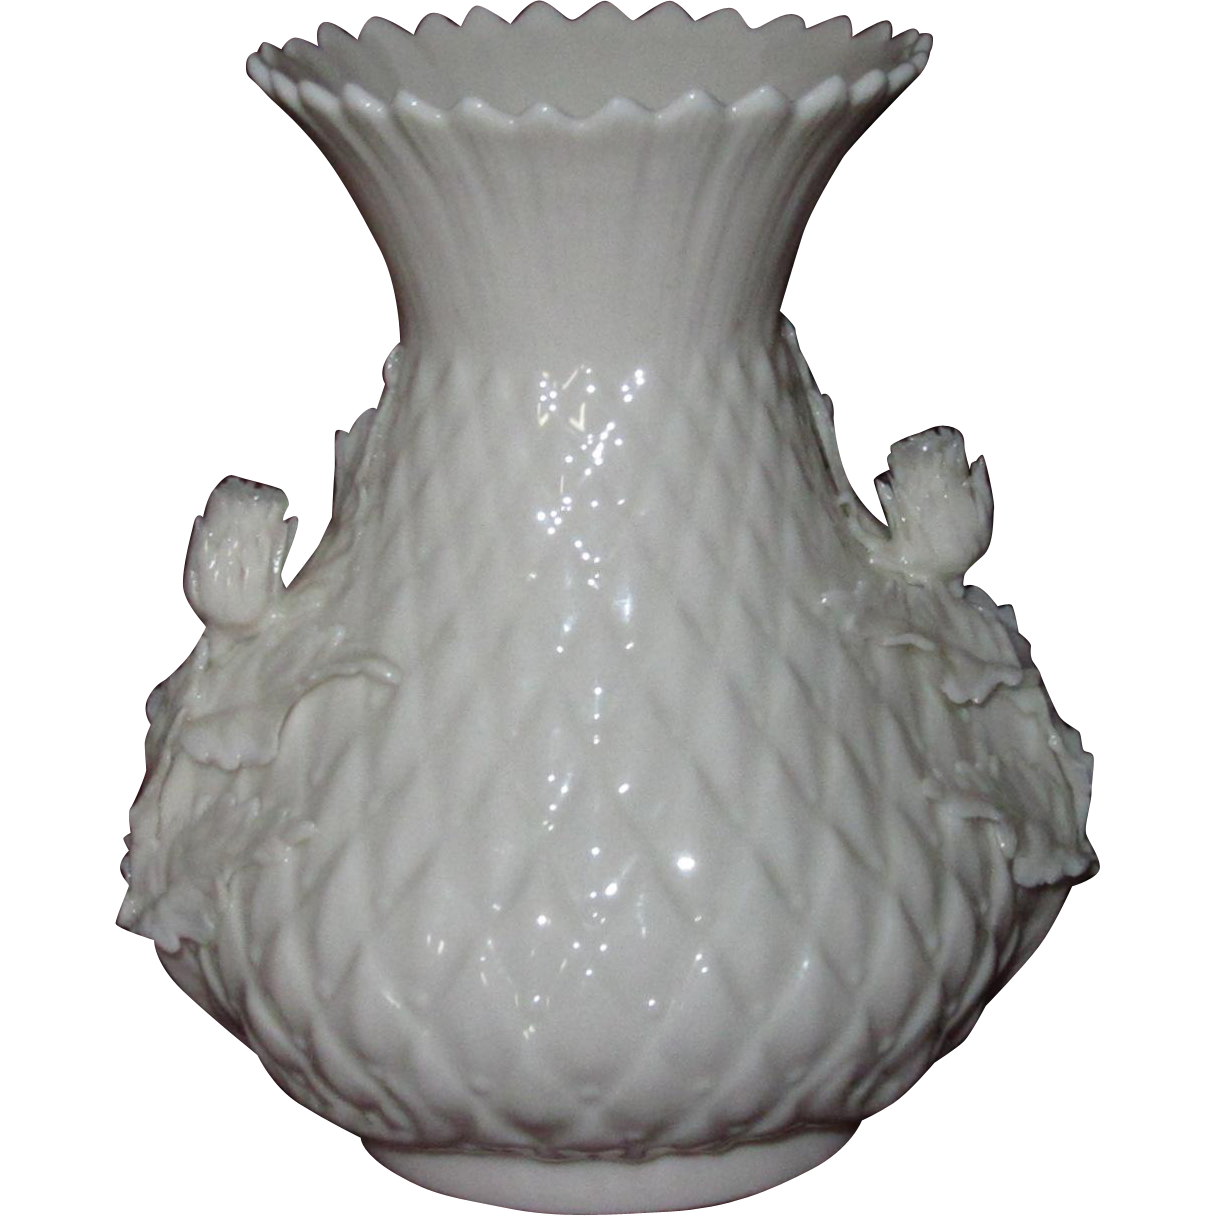 Irish Belleek Thistle Vase w/ Applied Thistle Blossoms and Leaves, Second Green Mark (1)